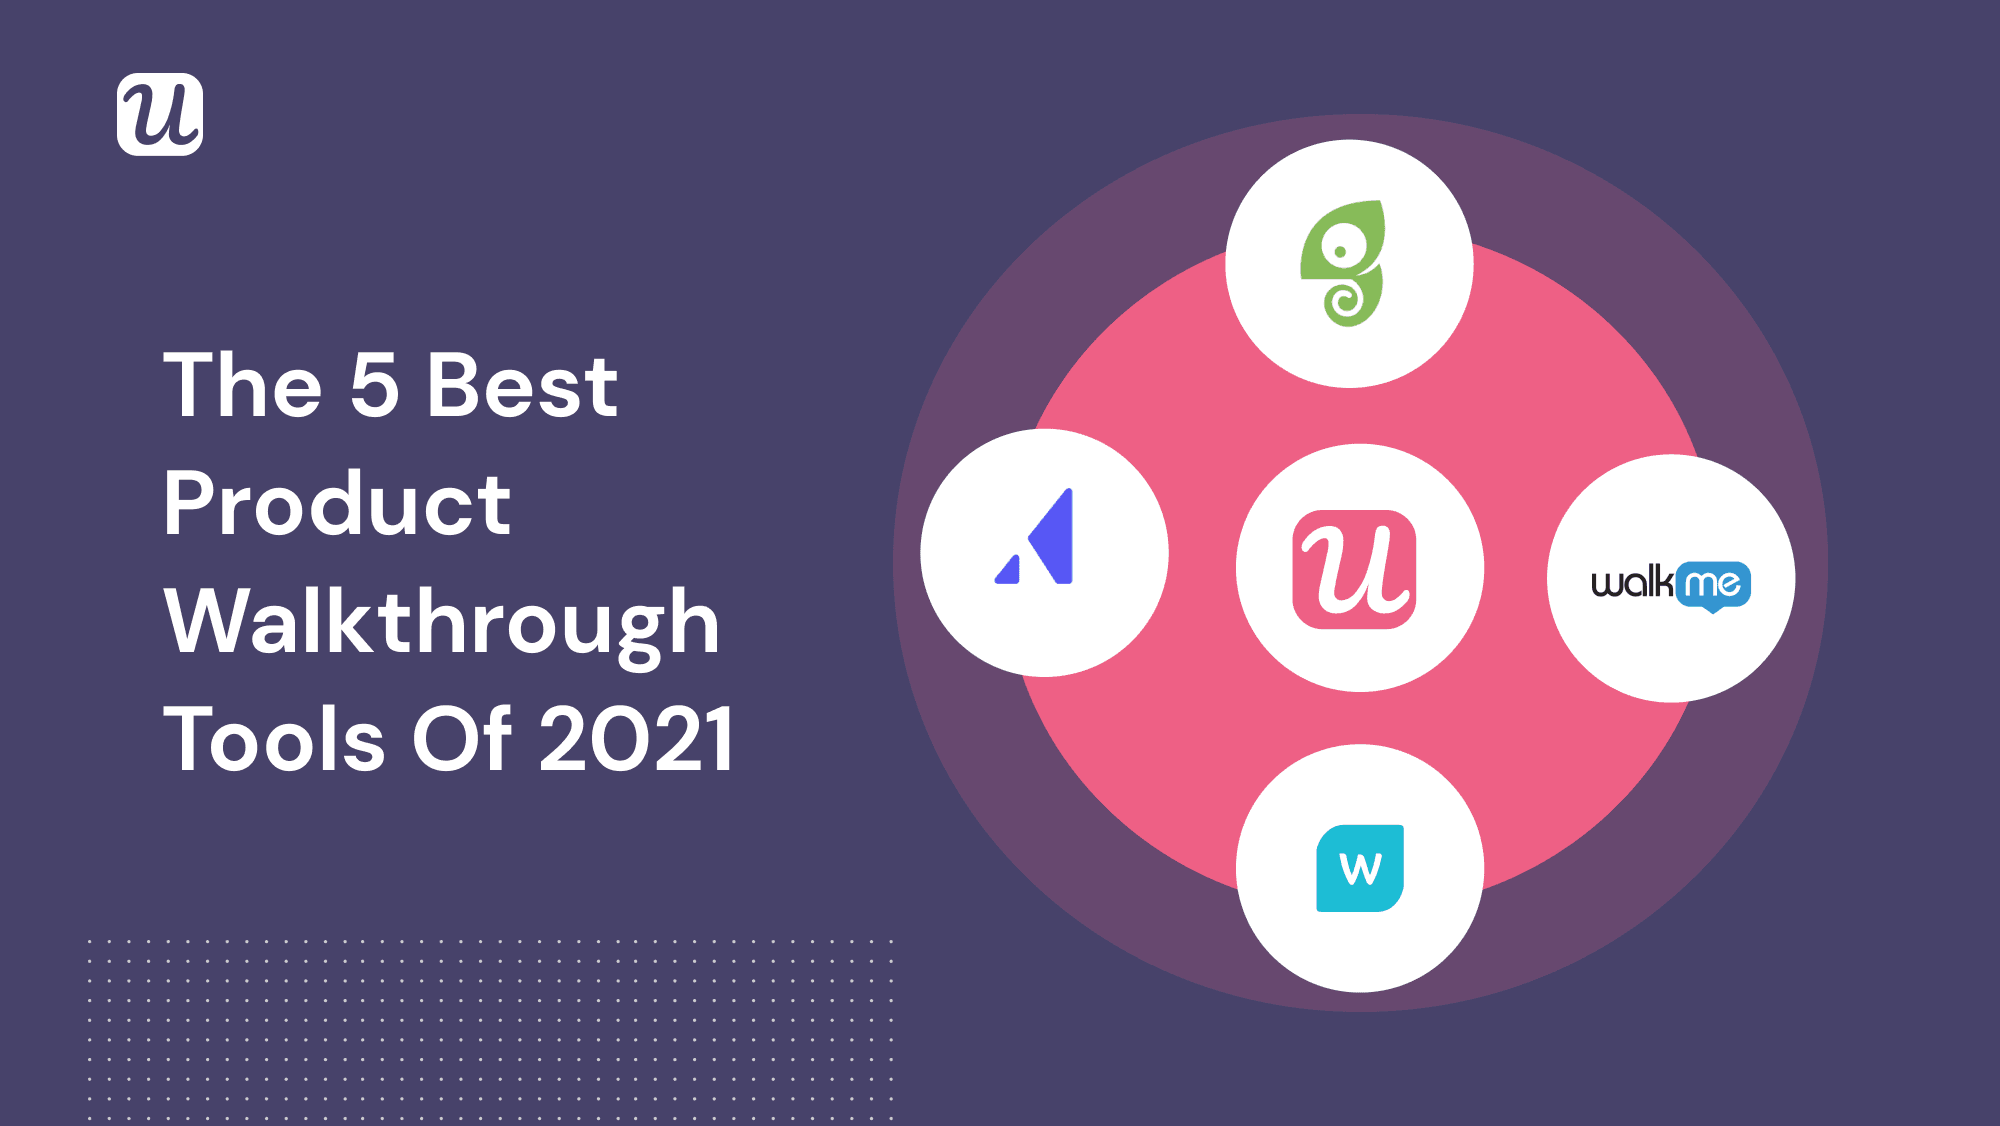 The 5 Best Product Walkthrough Tools of 2021